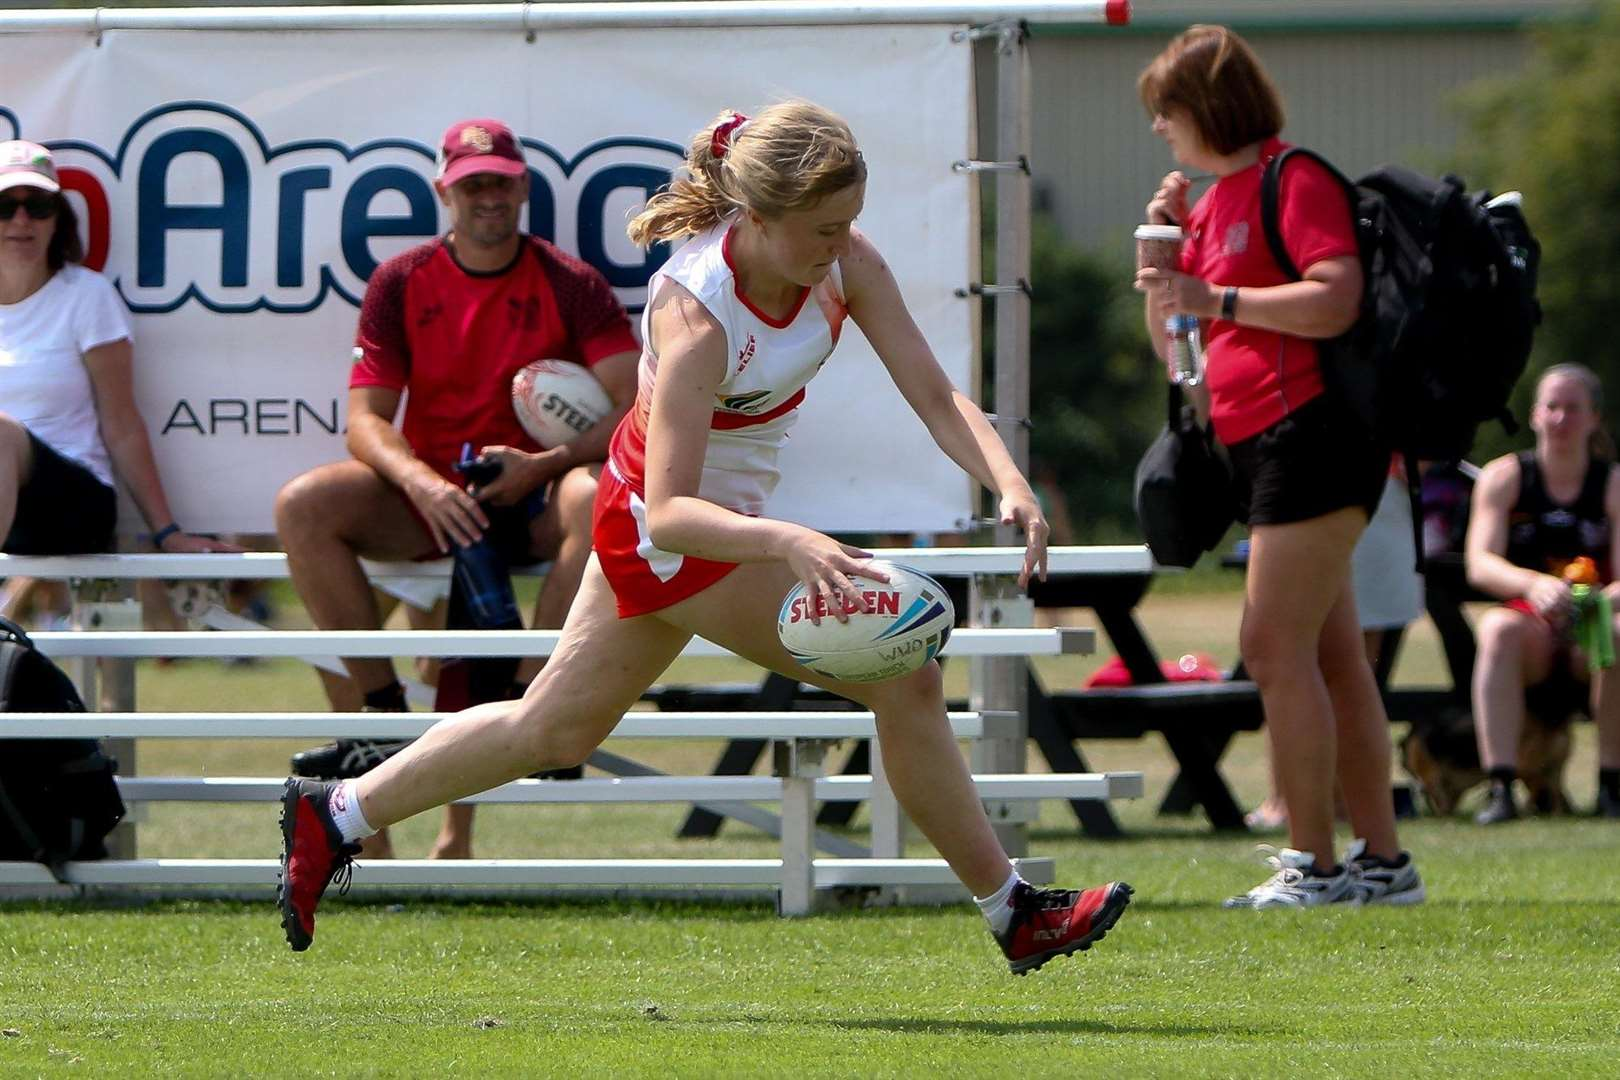 Lucy Norburn scoring a try for England Women at the 2018 European Touch Rugby Championships in Nottongham, where the side went on to win gold (6708825)